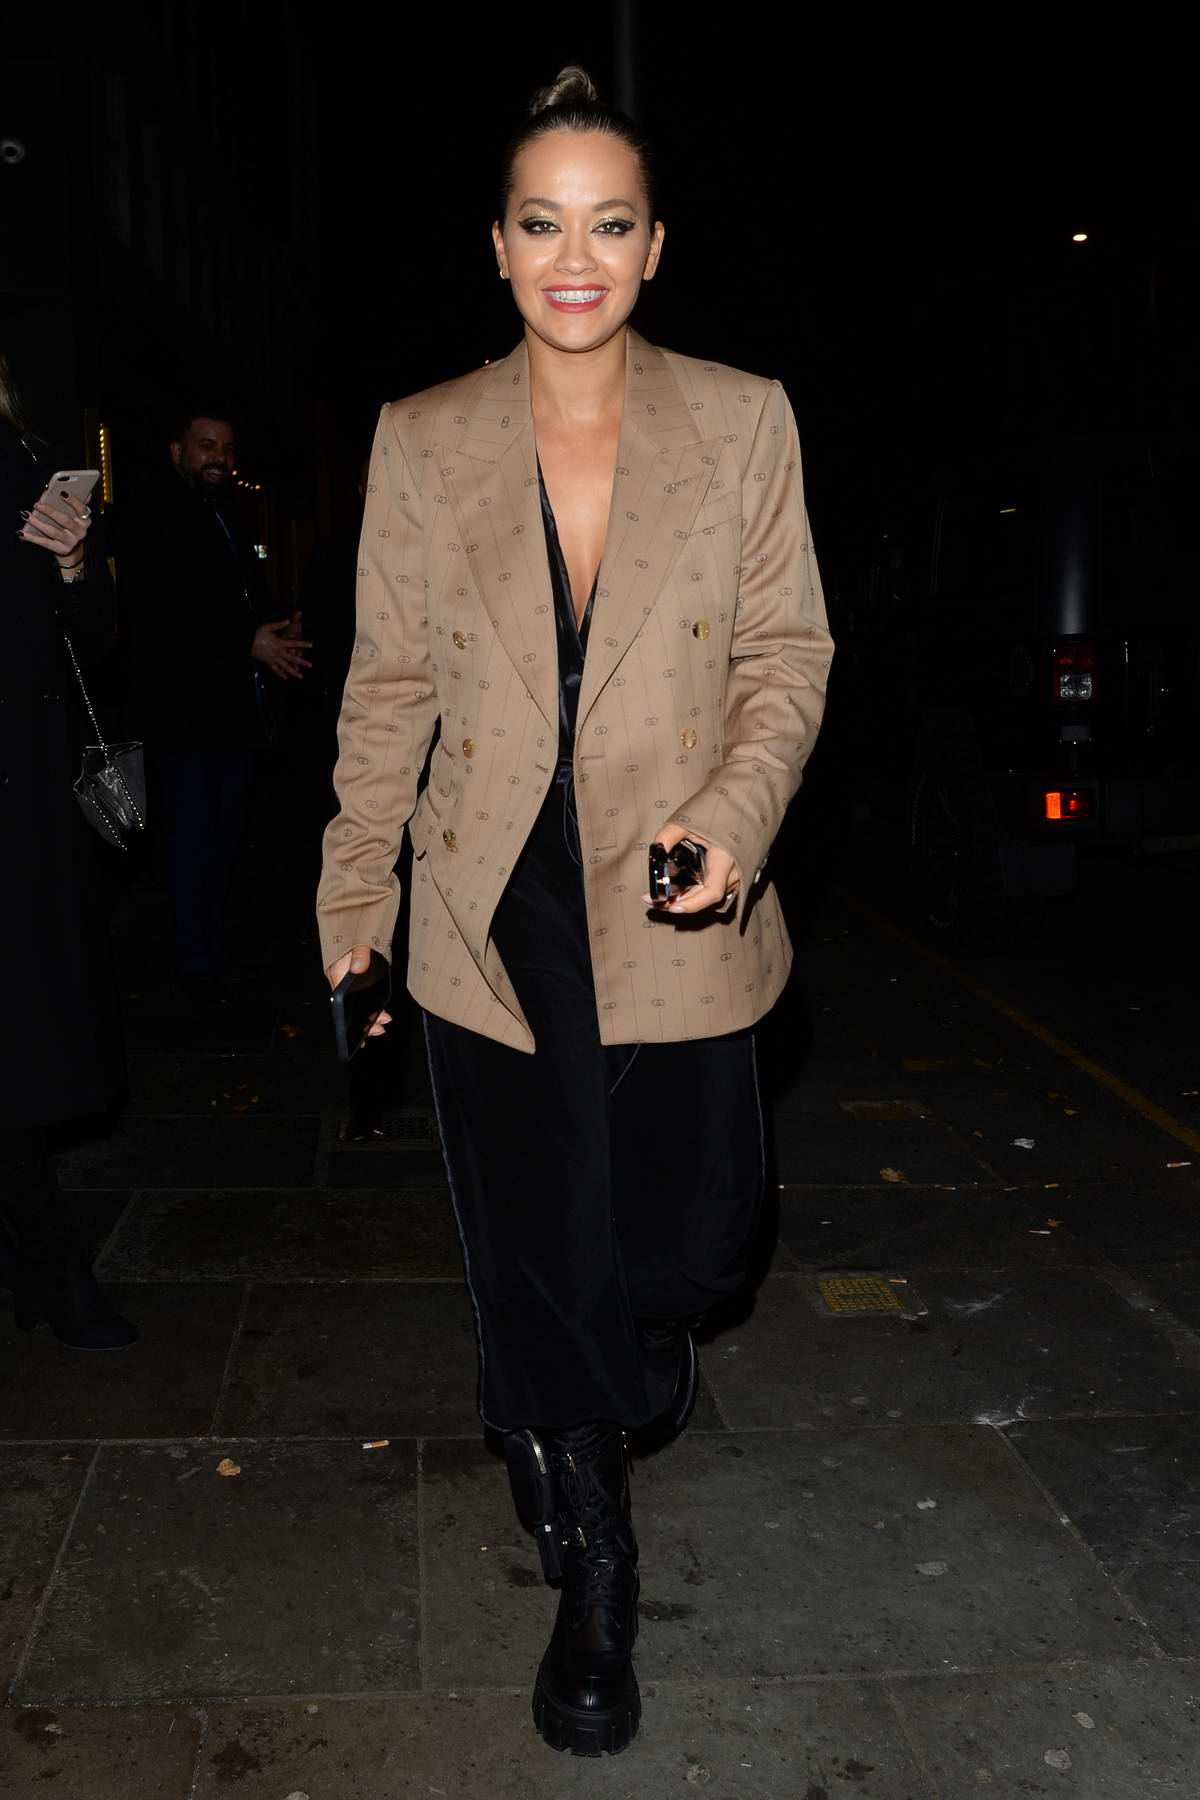 Rita Ora seen leaving Ours restaurant in Kensington, London, UK